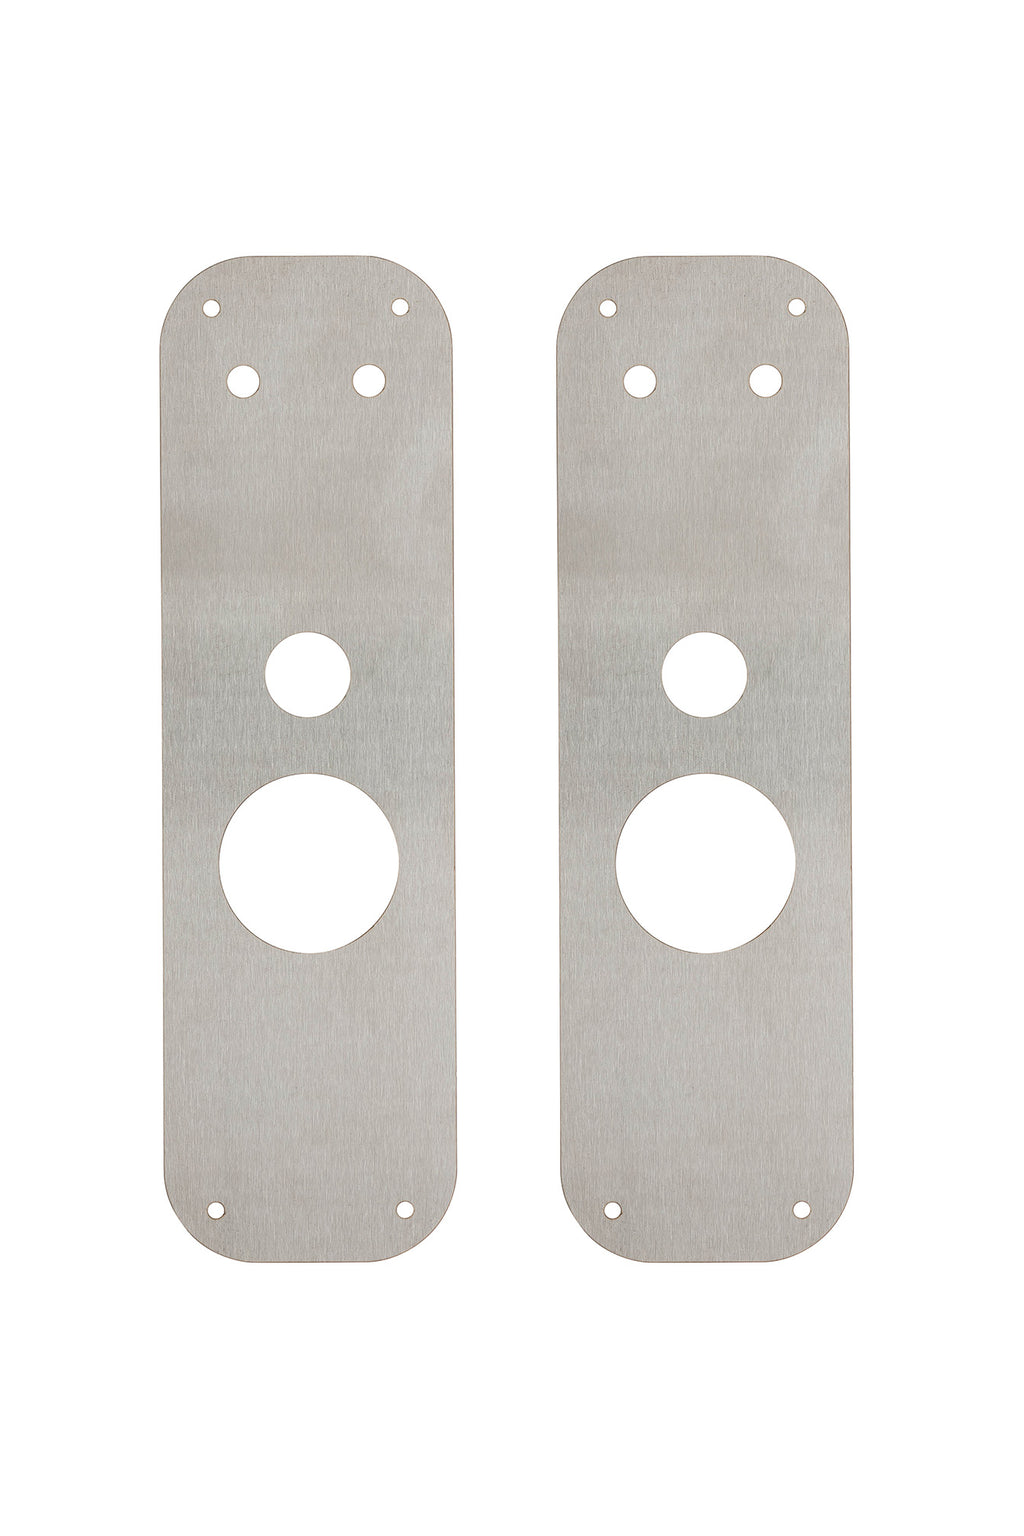 OpenEdge 700 Series Coverplates